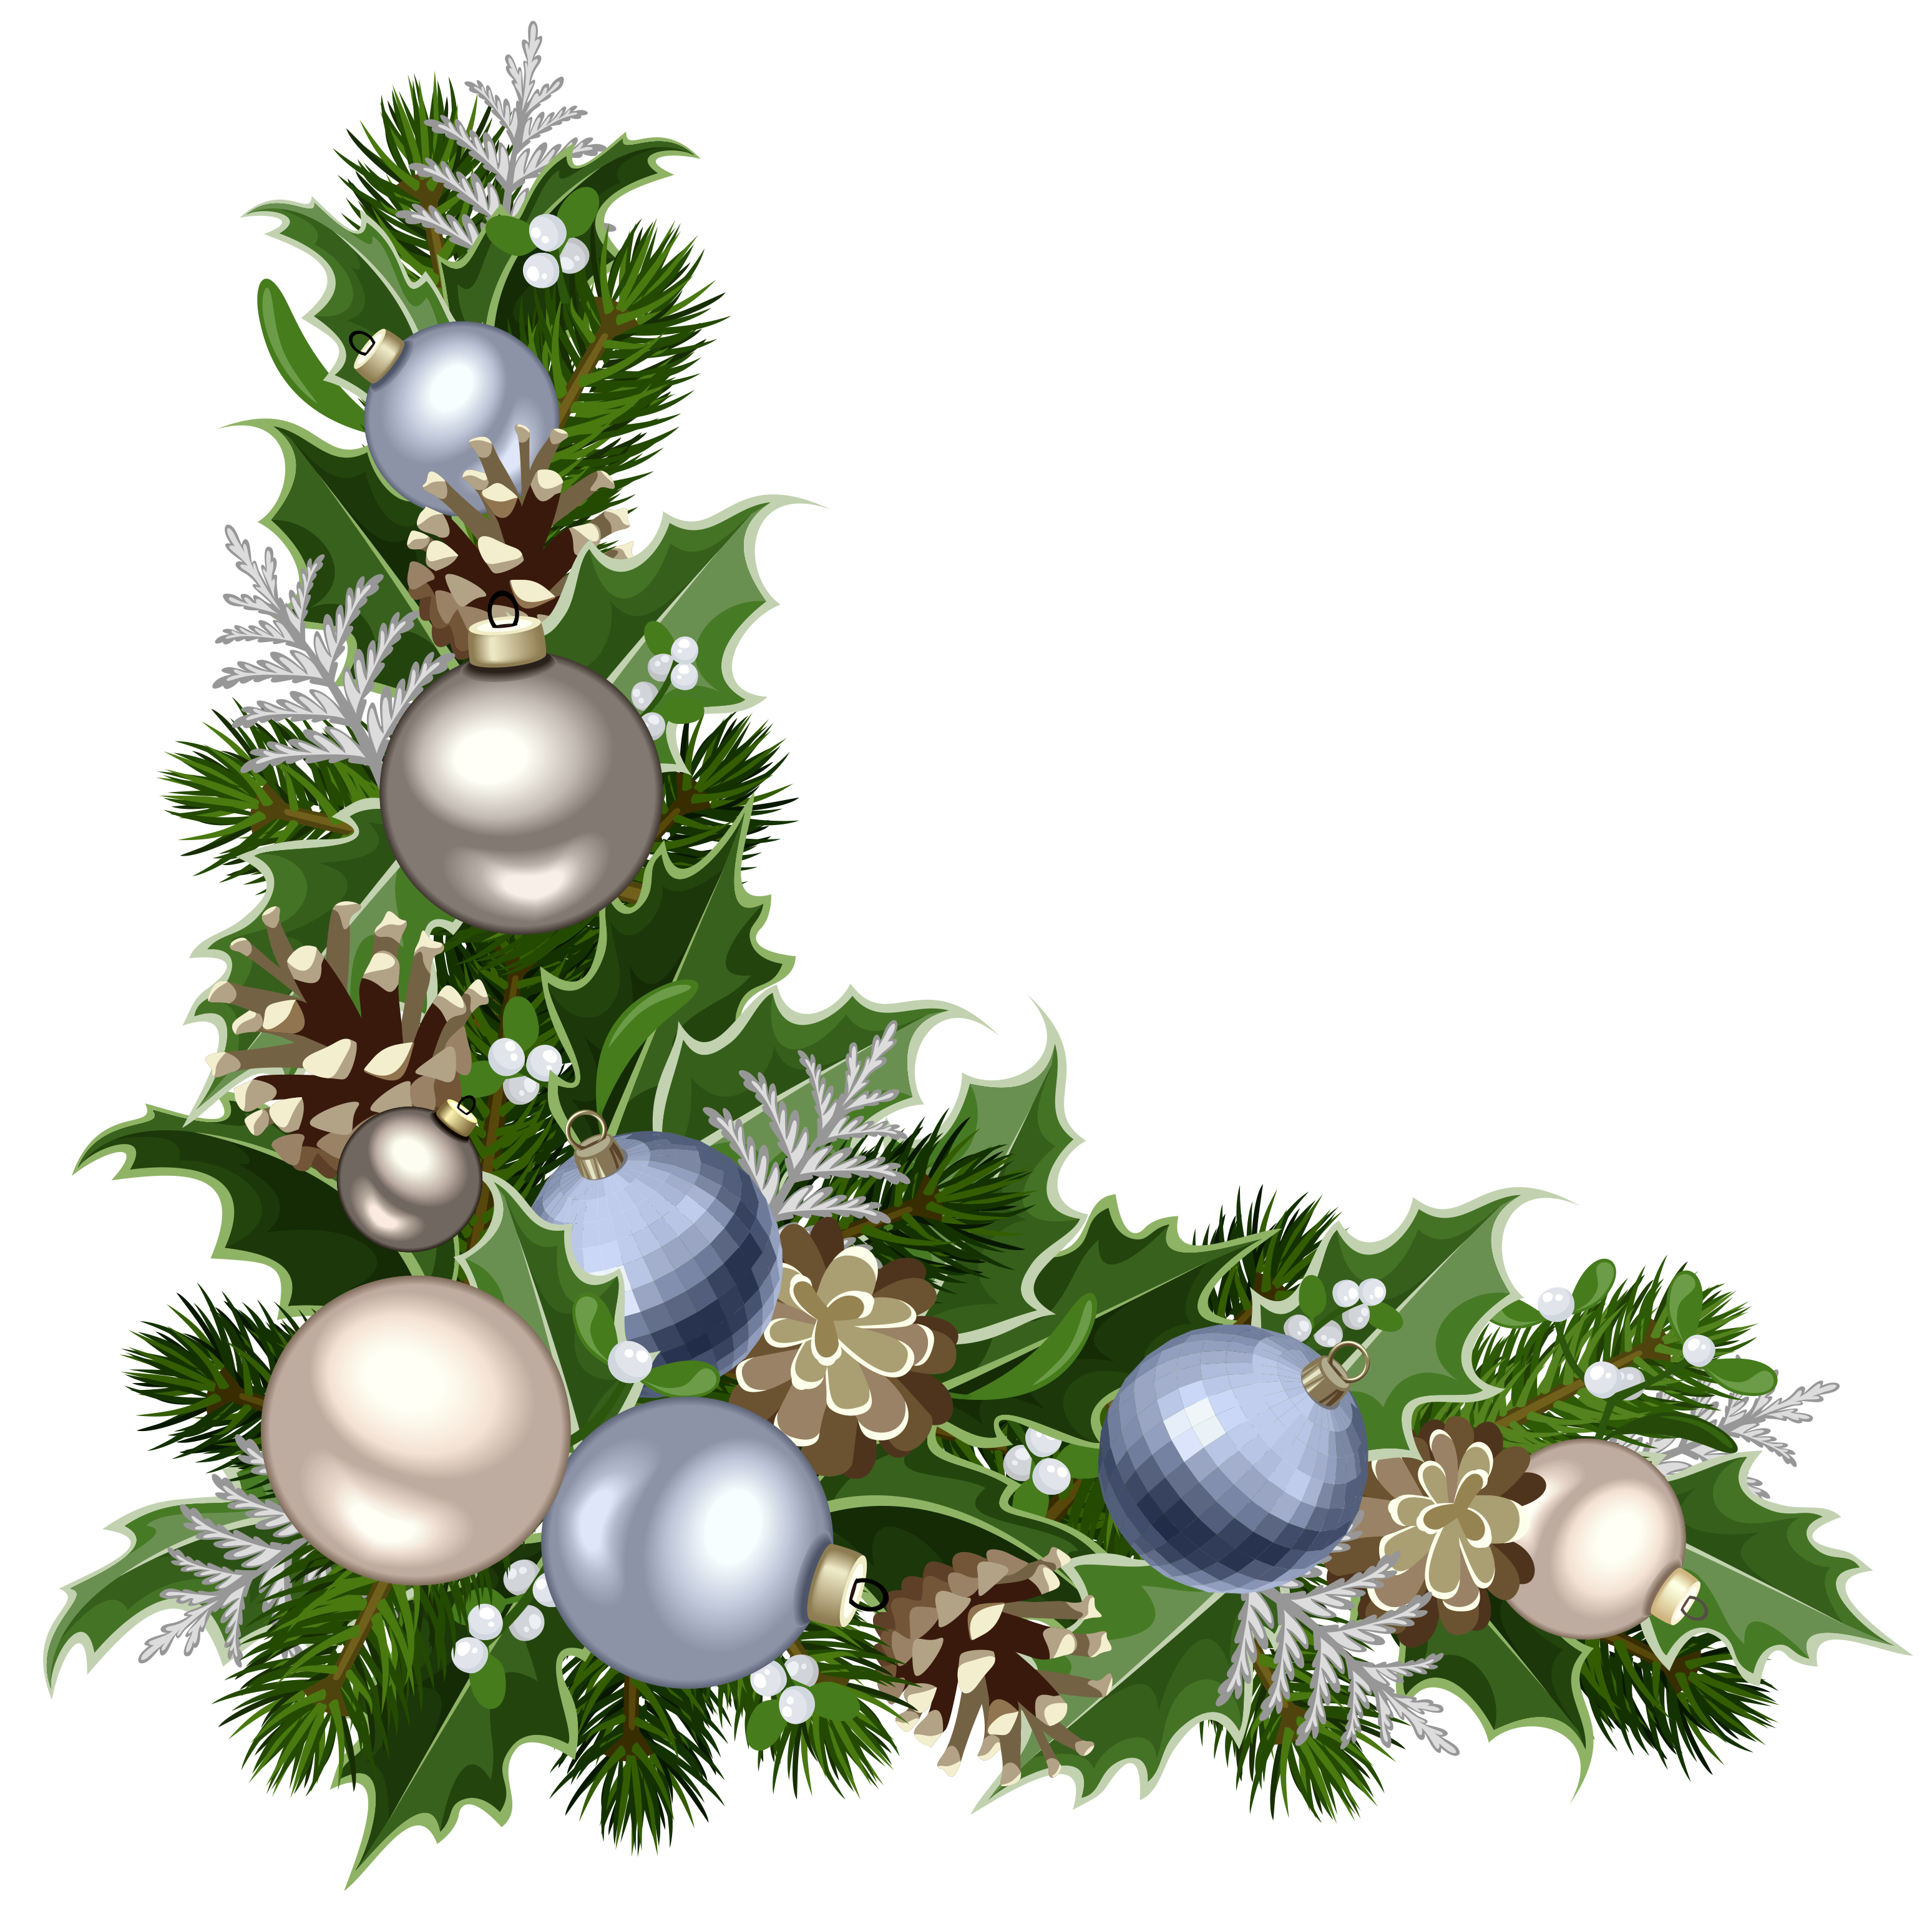 Christmas corner border clipart clipart freeuse stock Christmas Deco Corner with Decorations PNG Picture | Gallery ... clipart freeuse stock